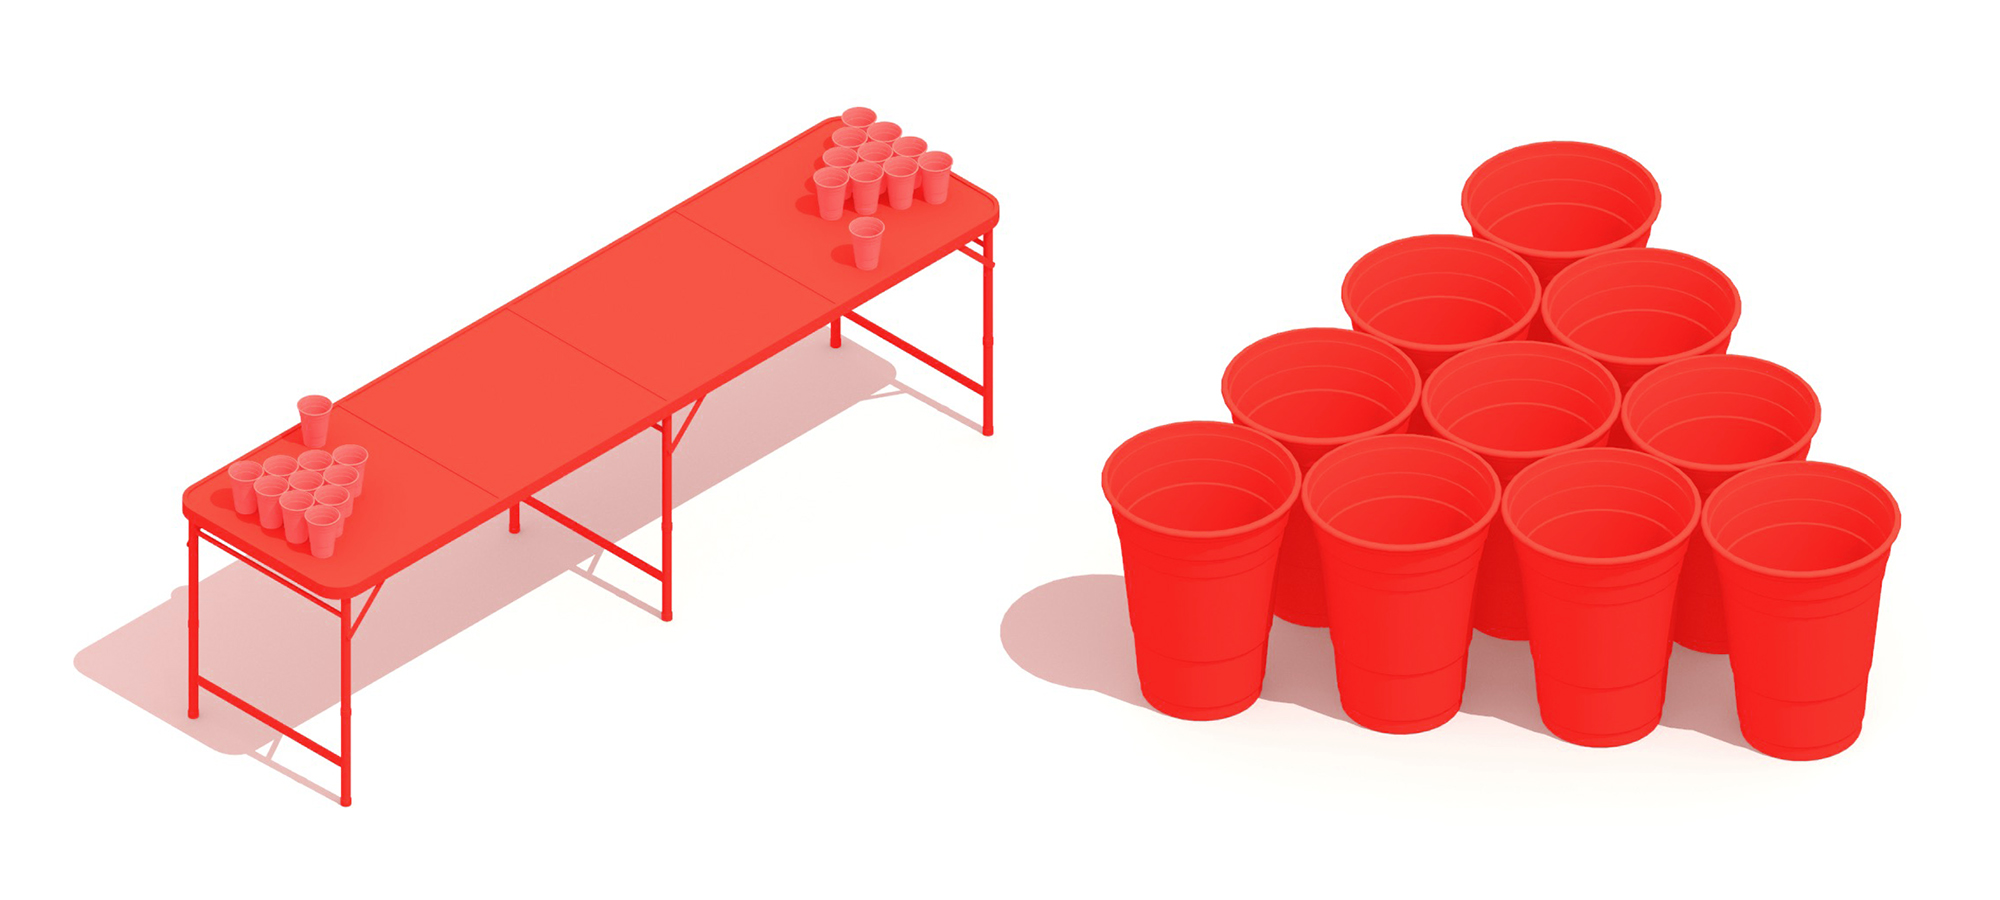 Pair of 3D perspectives of Beer Pong equipment including a Beer Pong Table and Beer Pong Cups